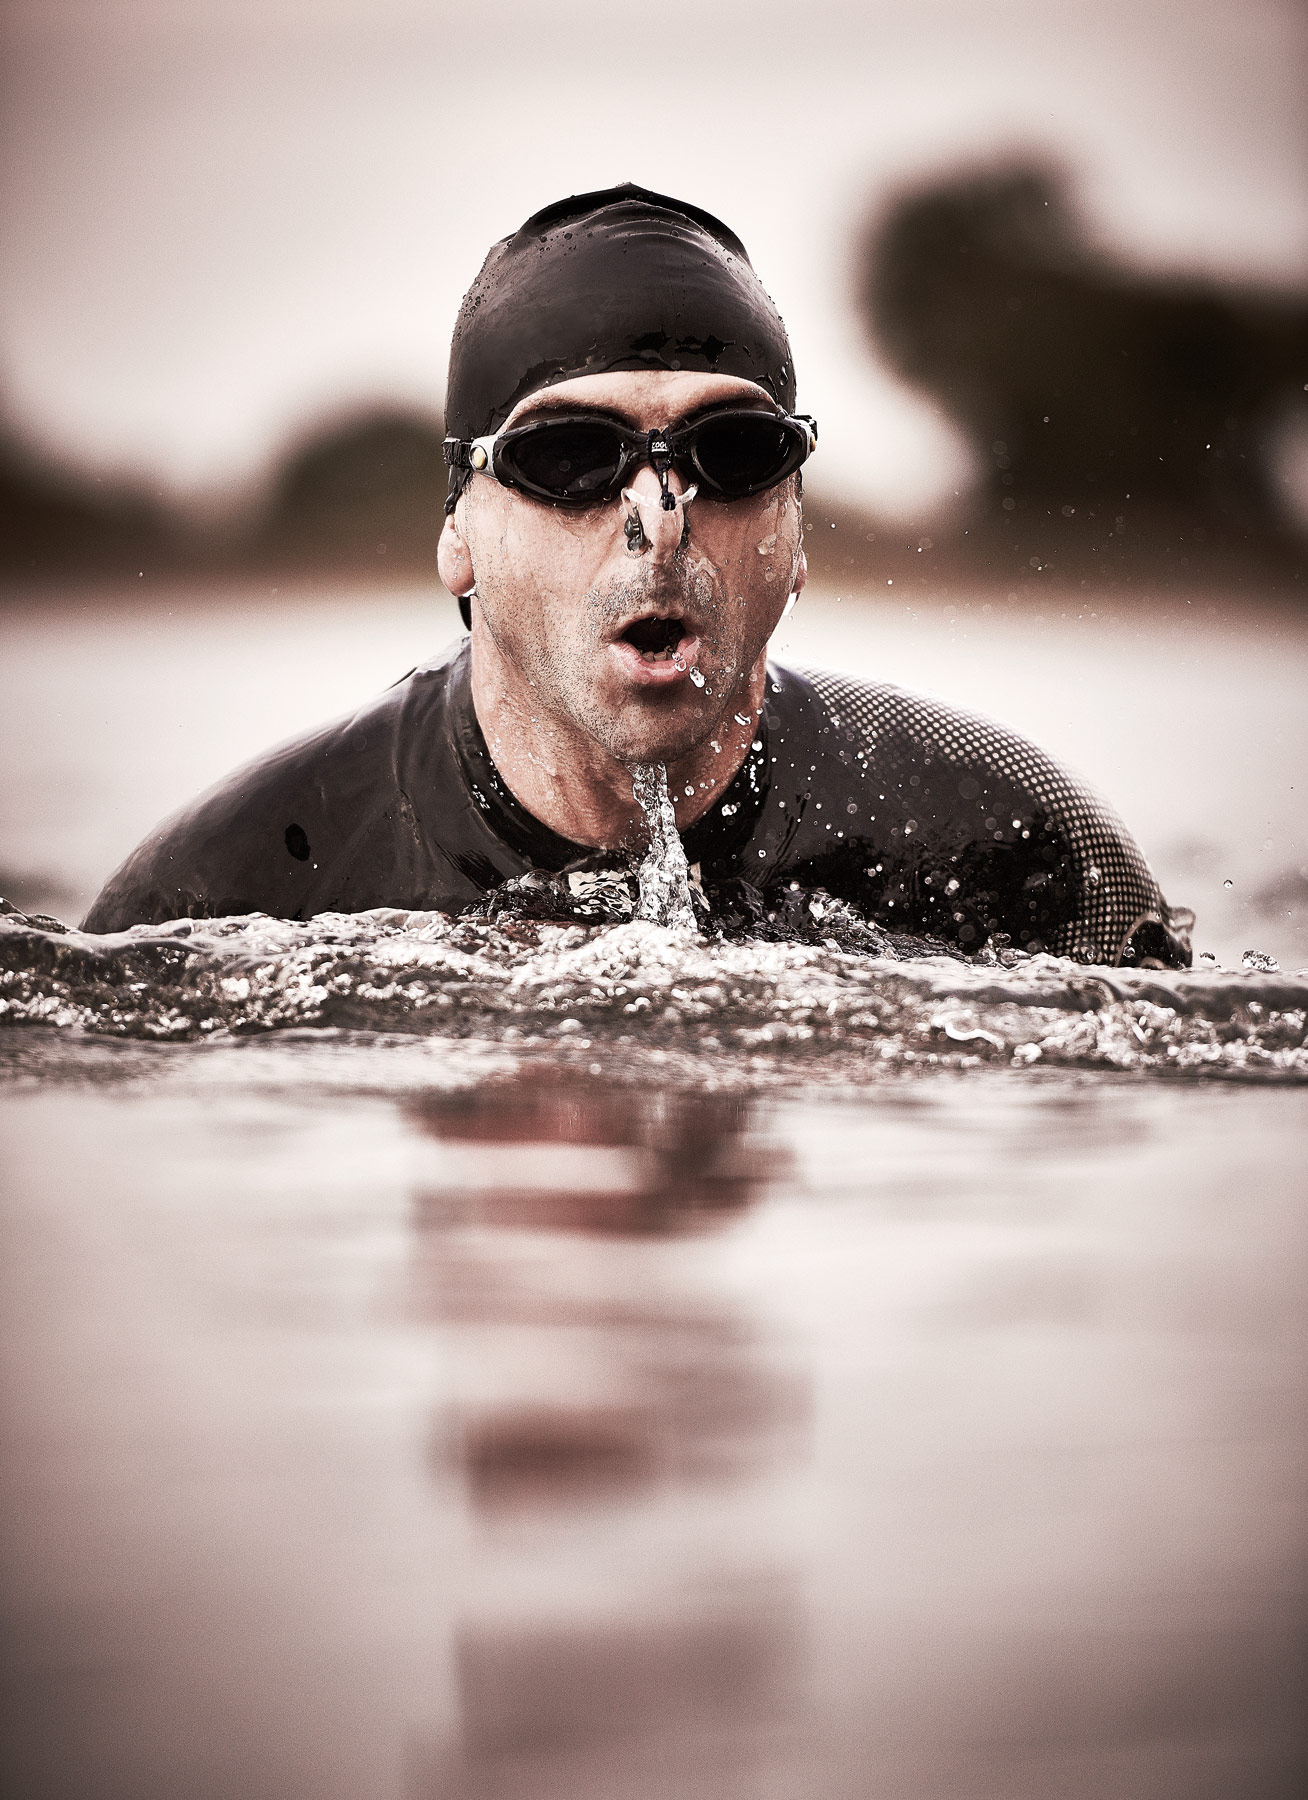 Open water swimming with hat and goggles